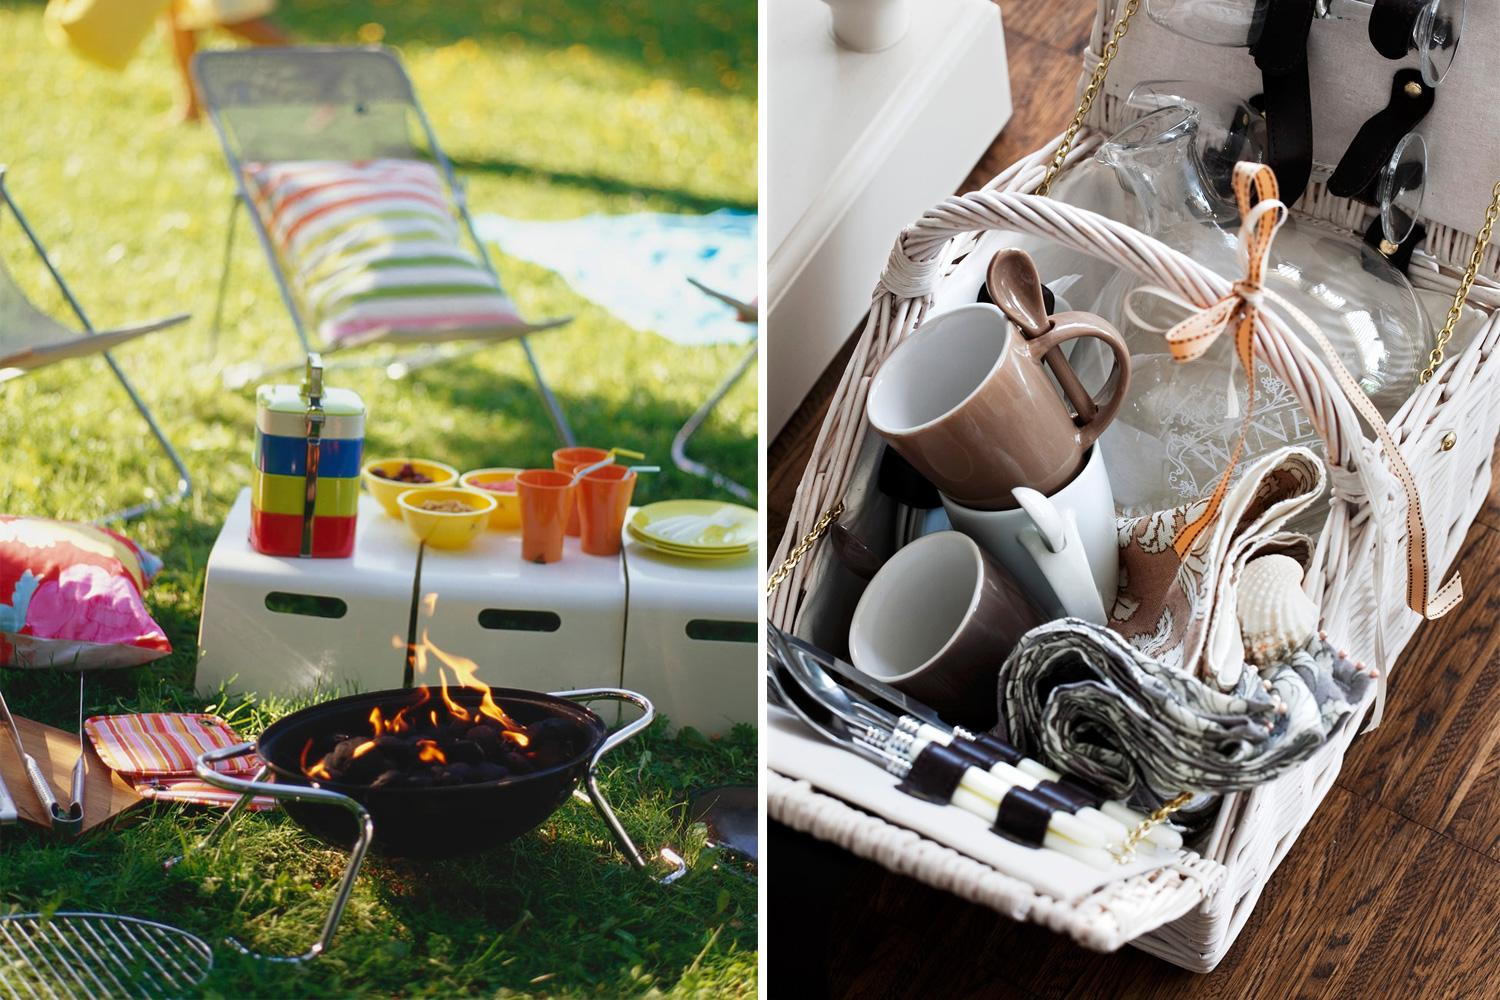 Barbecue, Picnic, Outdoor